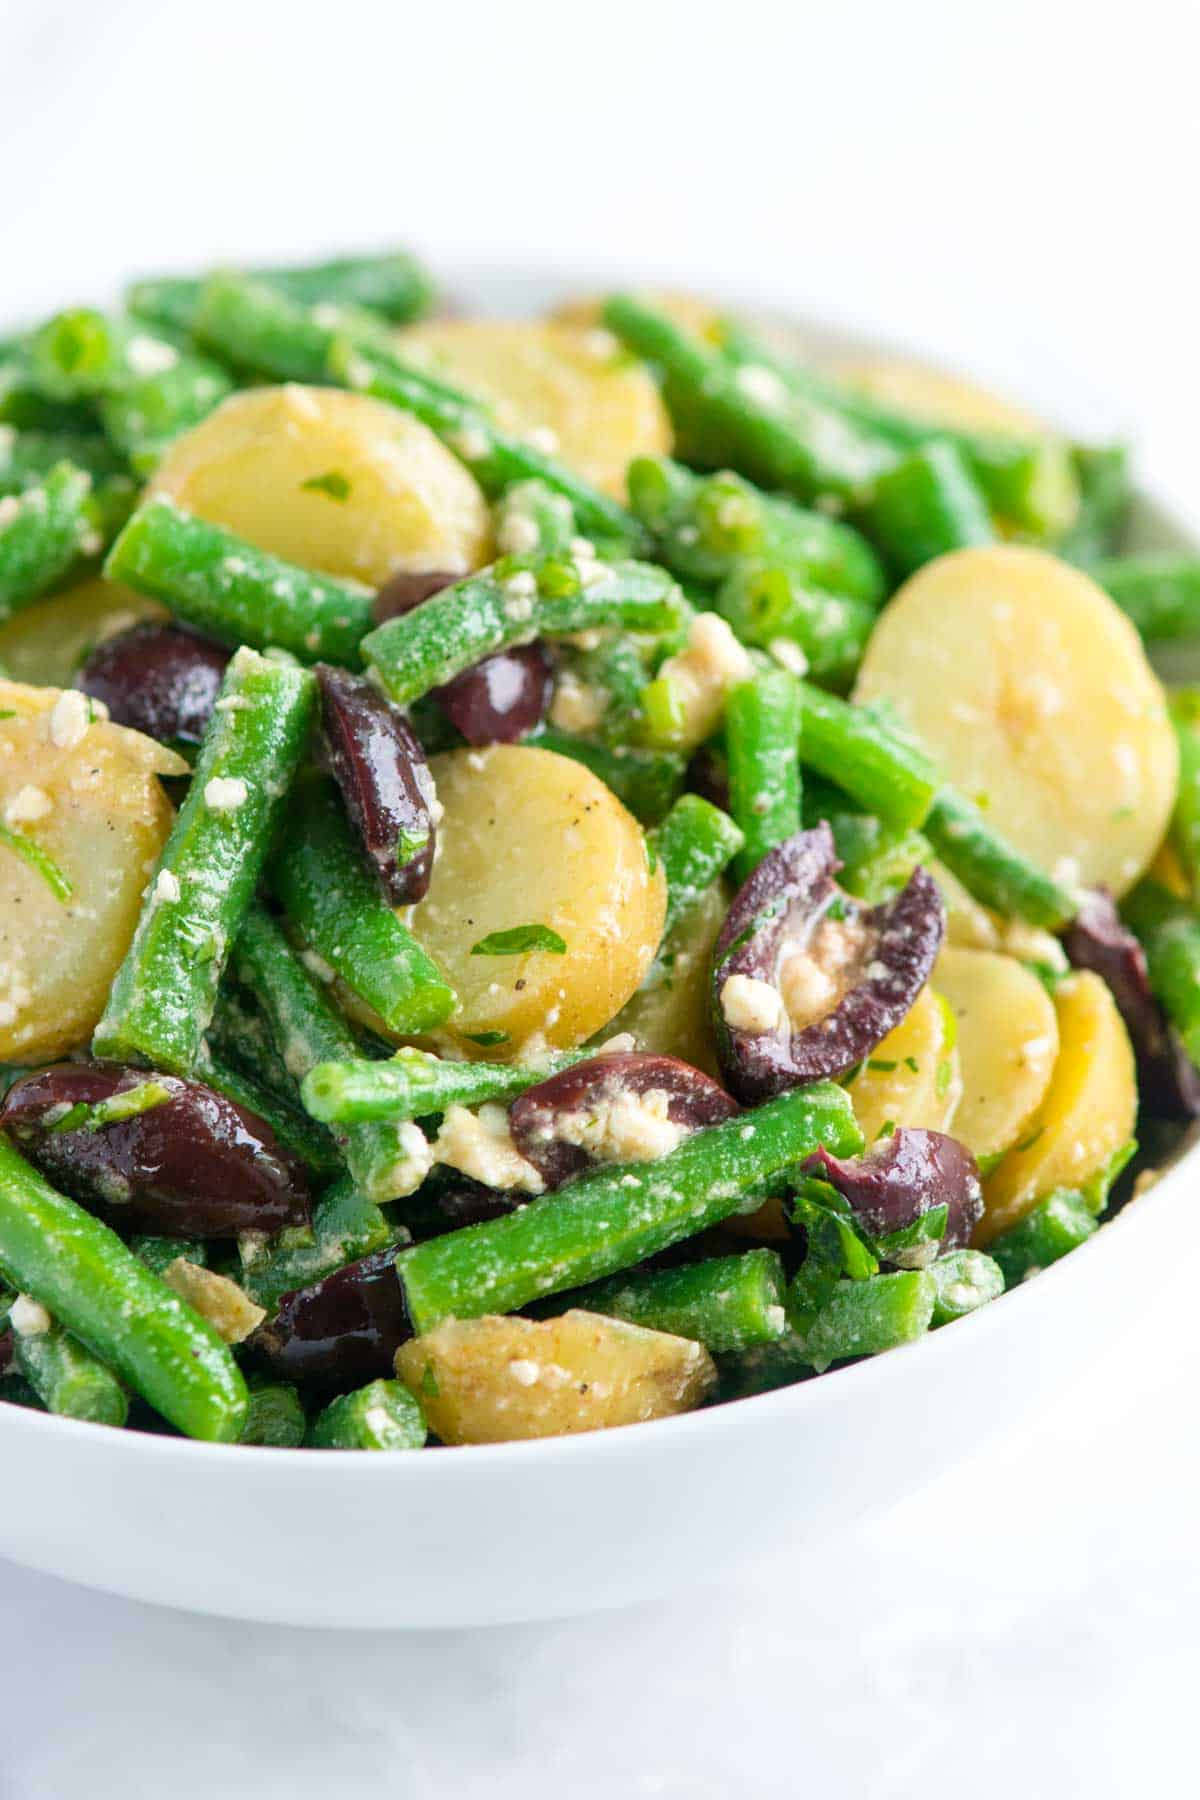 Bbc Good Food Green Bean Salad